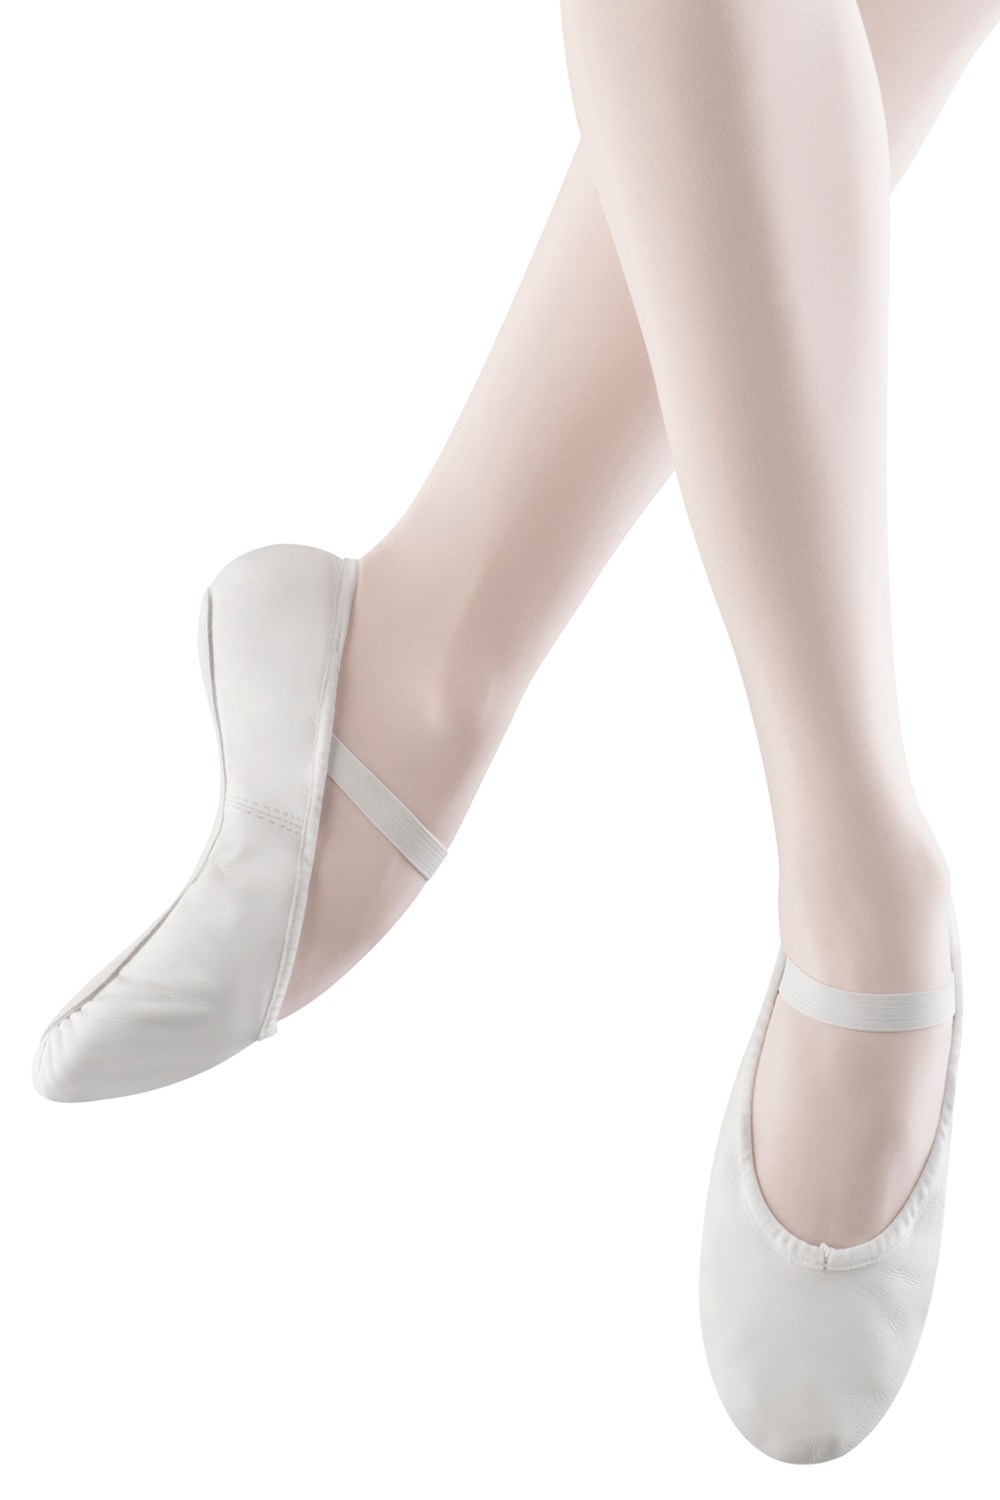 Arise - Fille Girl's Ballet Shoes